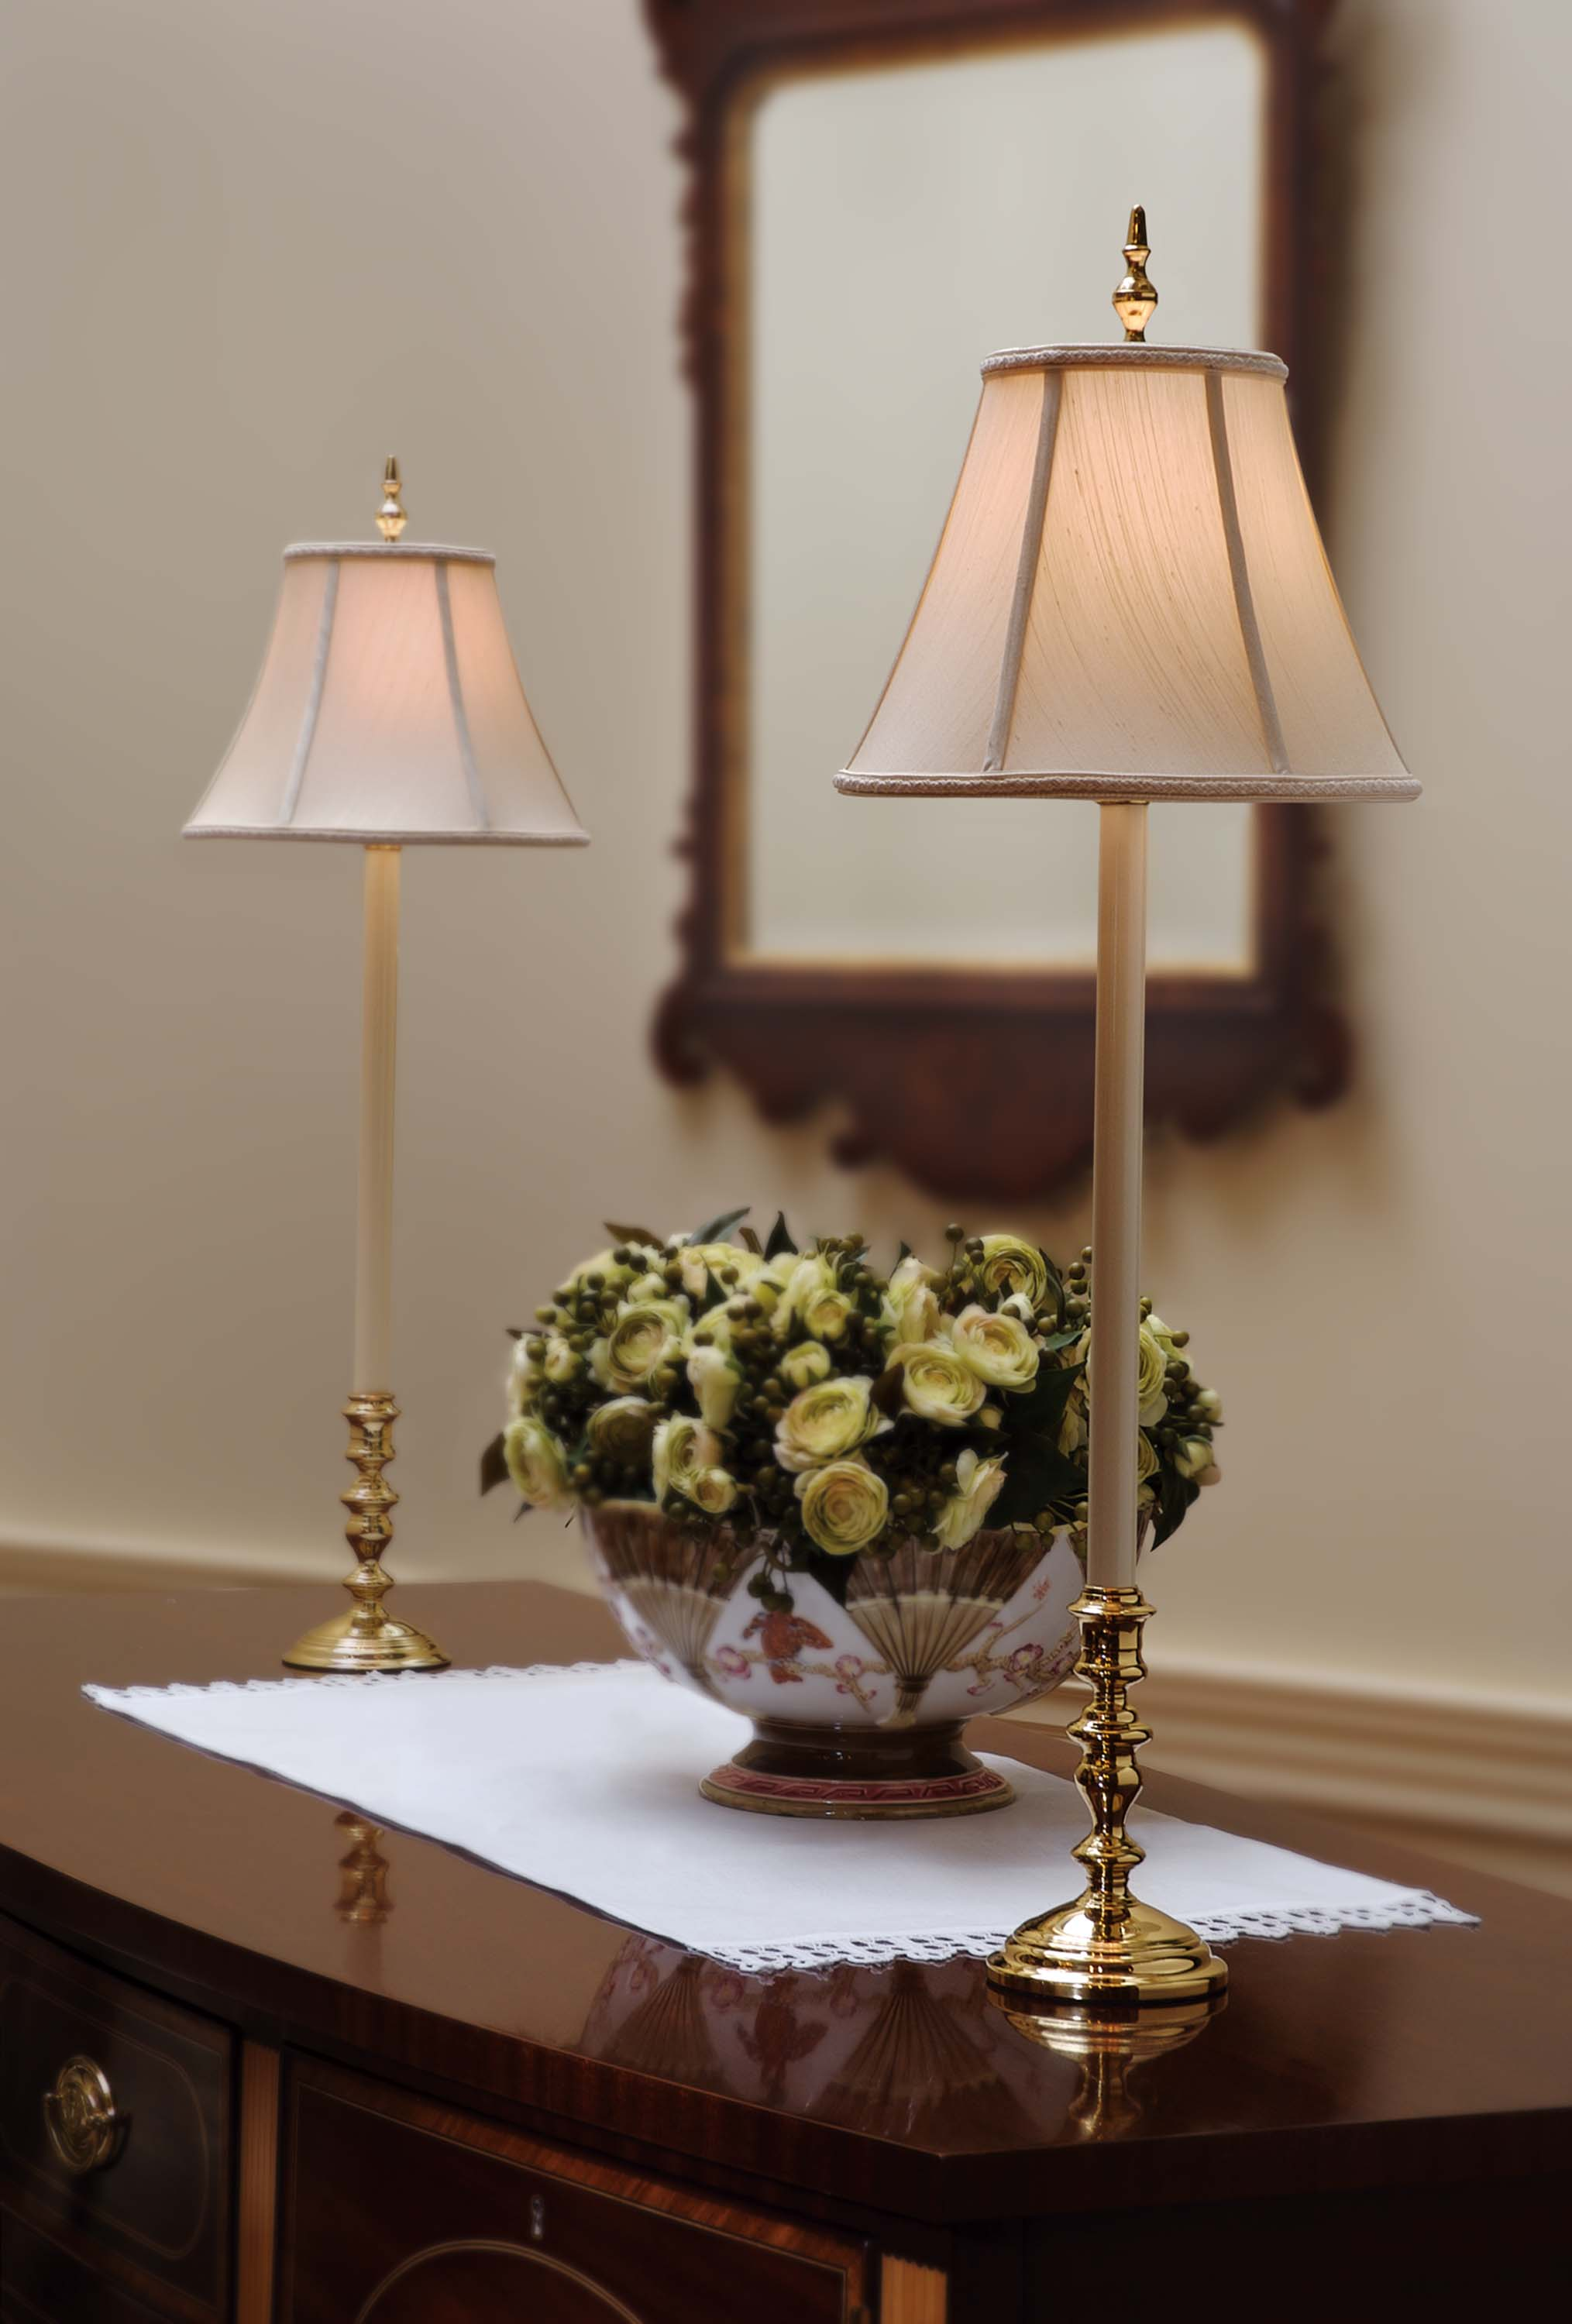 Advantages Of Using Br Buffet Lamps